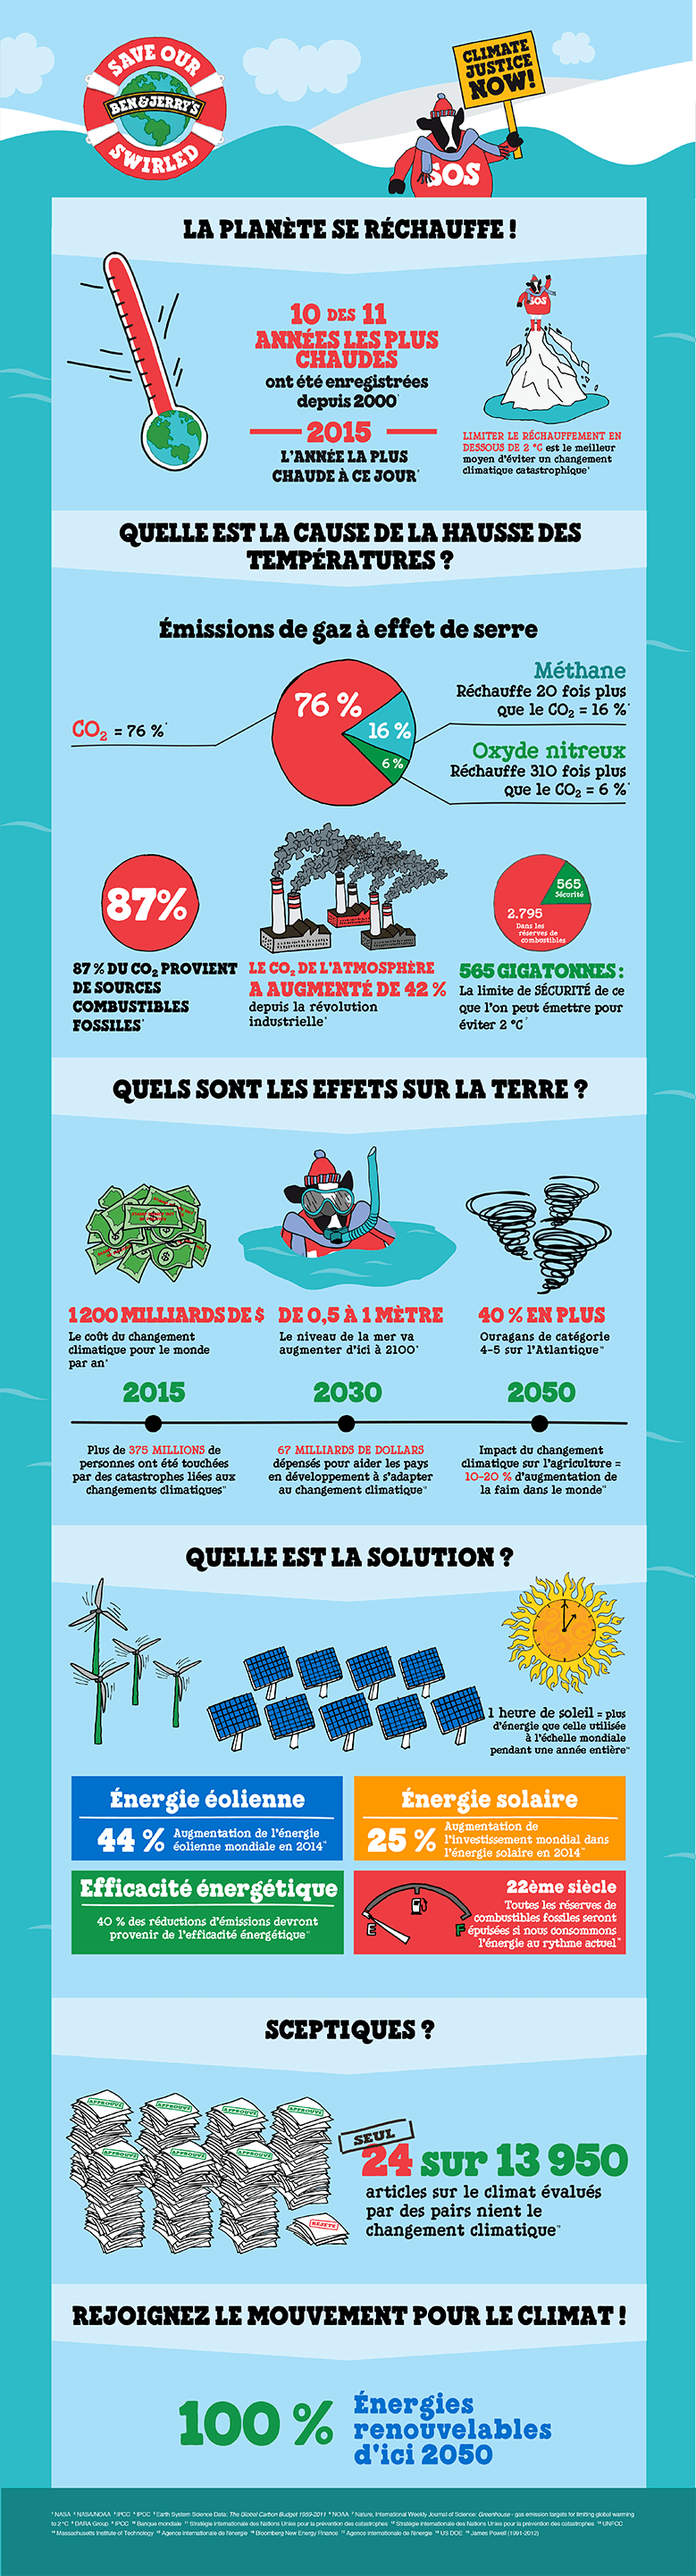 BJ_ClimateChange_Infographic_French-(France).png